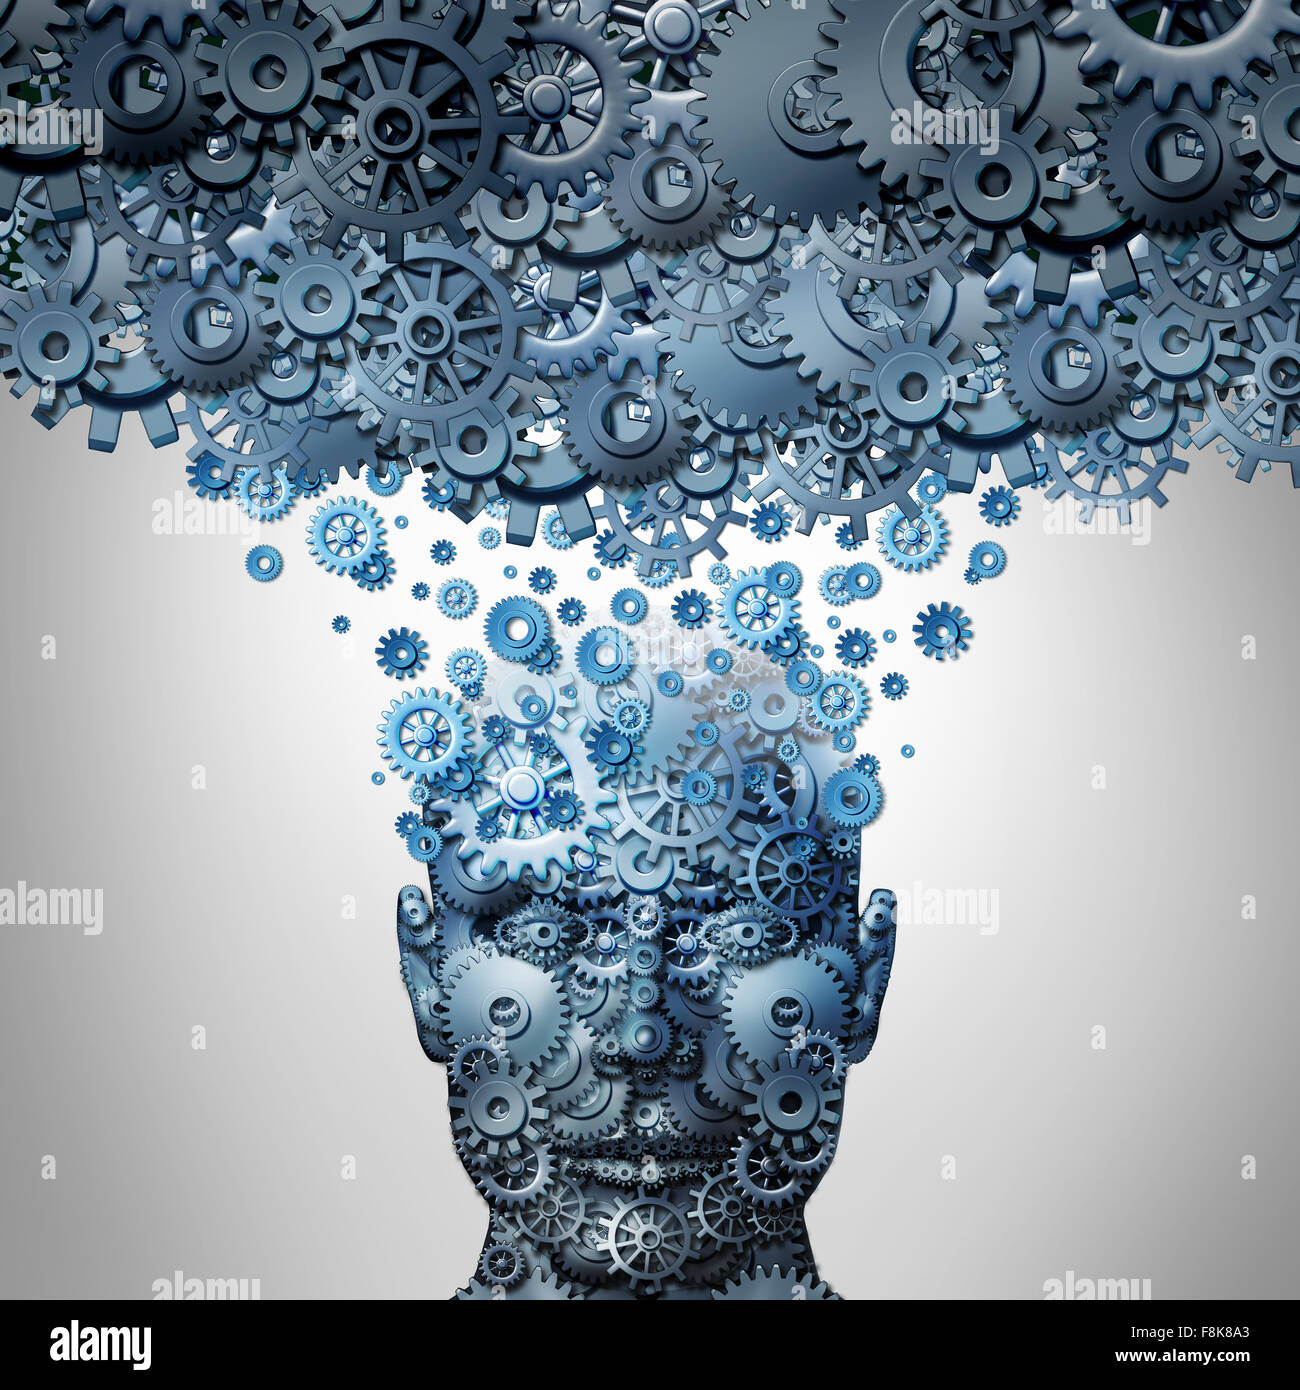 Upload your mind or uploading your brain concept as a human head made of mechanized gear and cog wheels being uploaded - Stock Image